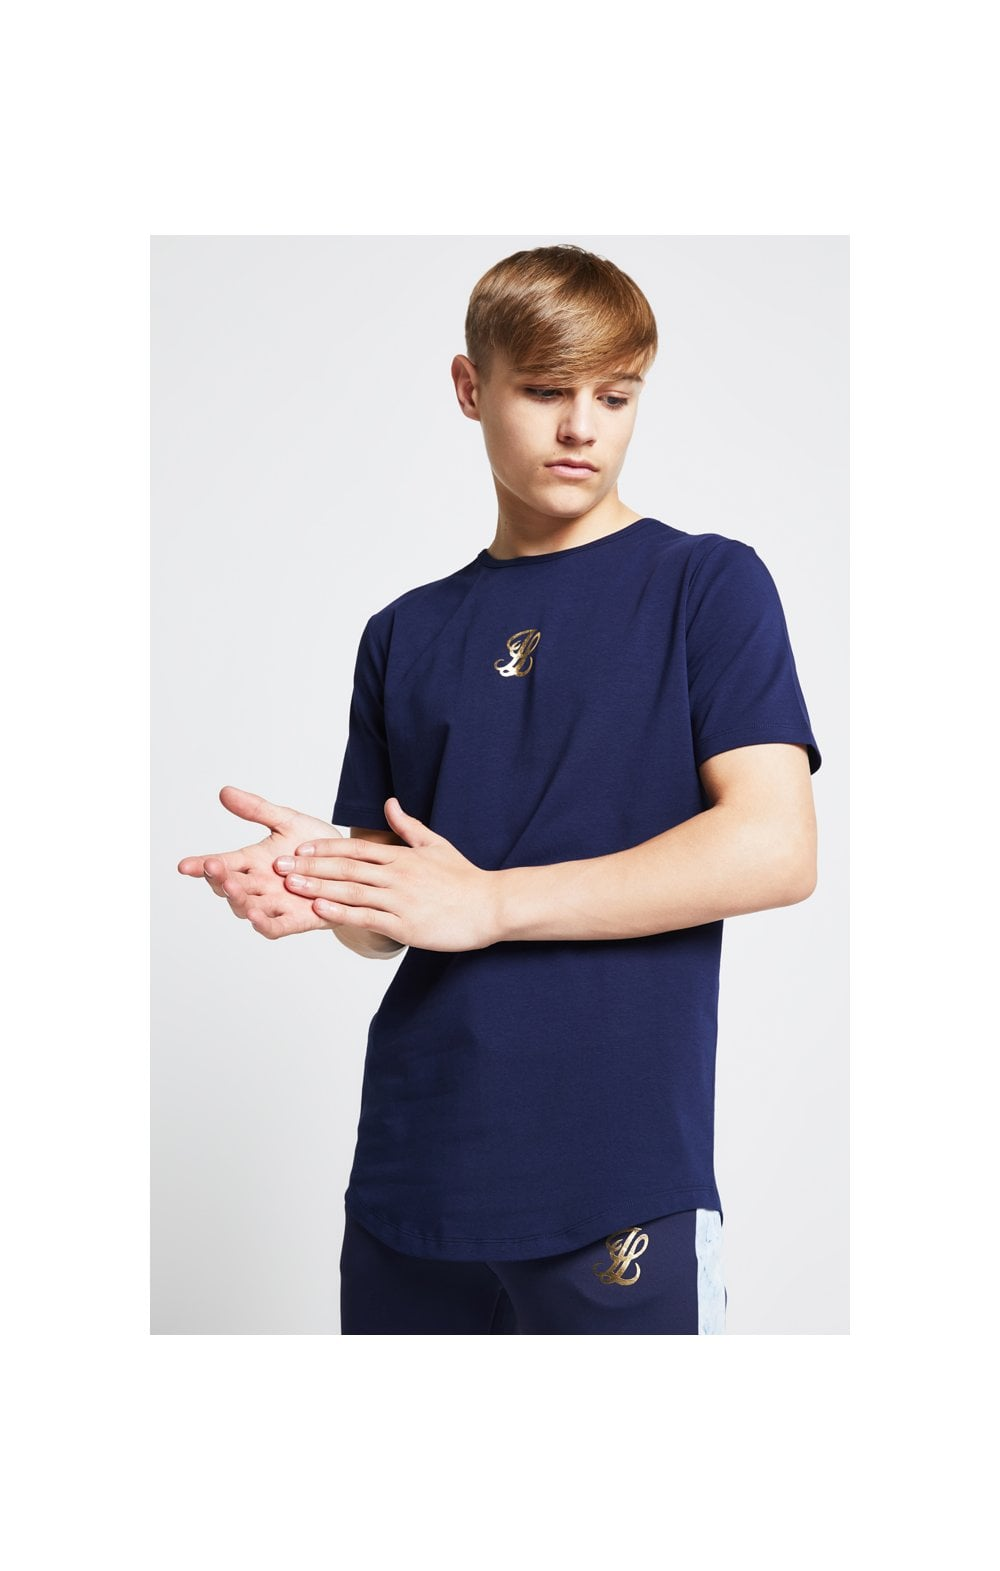 Illusive London Marble Racer Back Tee – Navy & Marble (2)